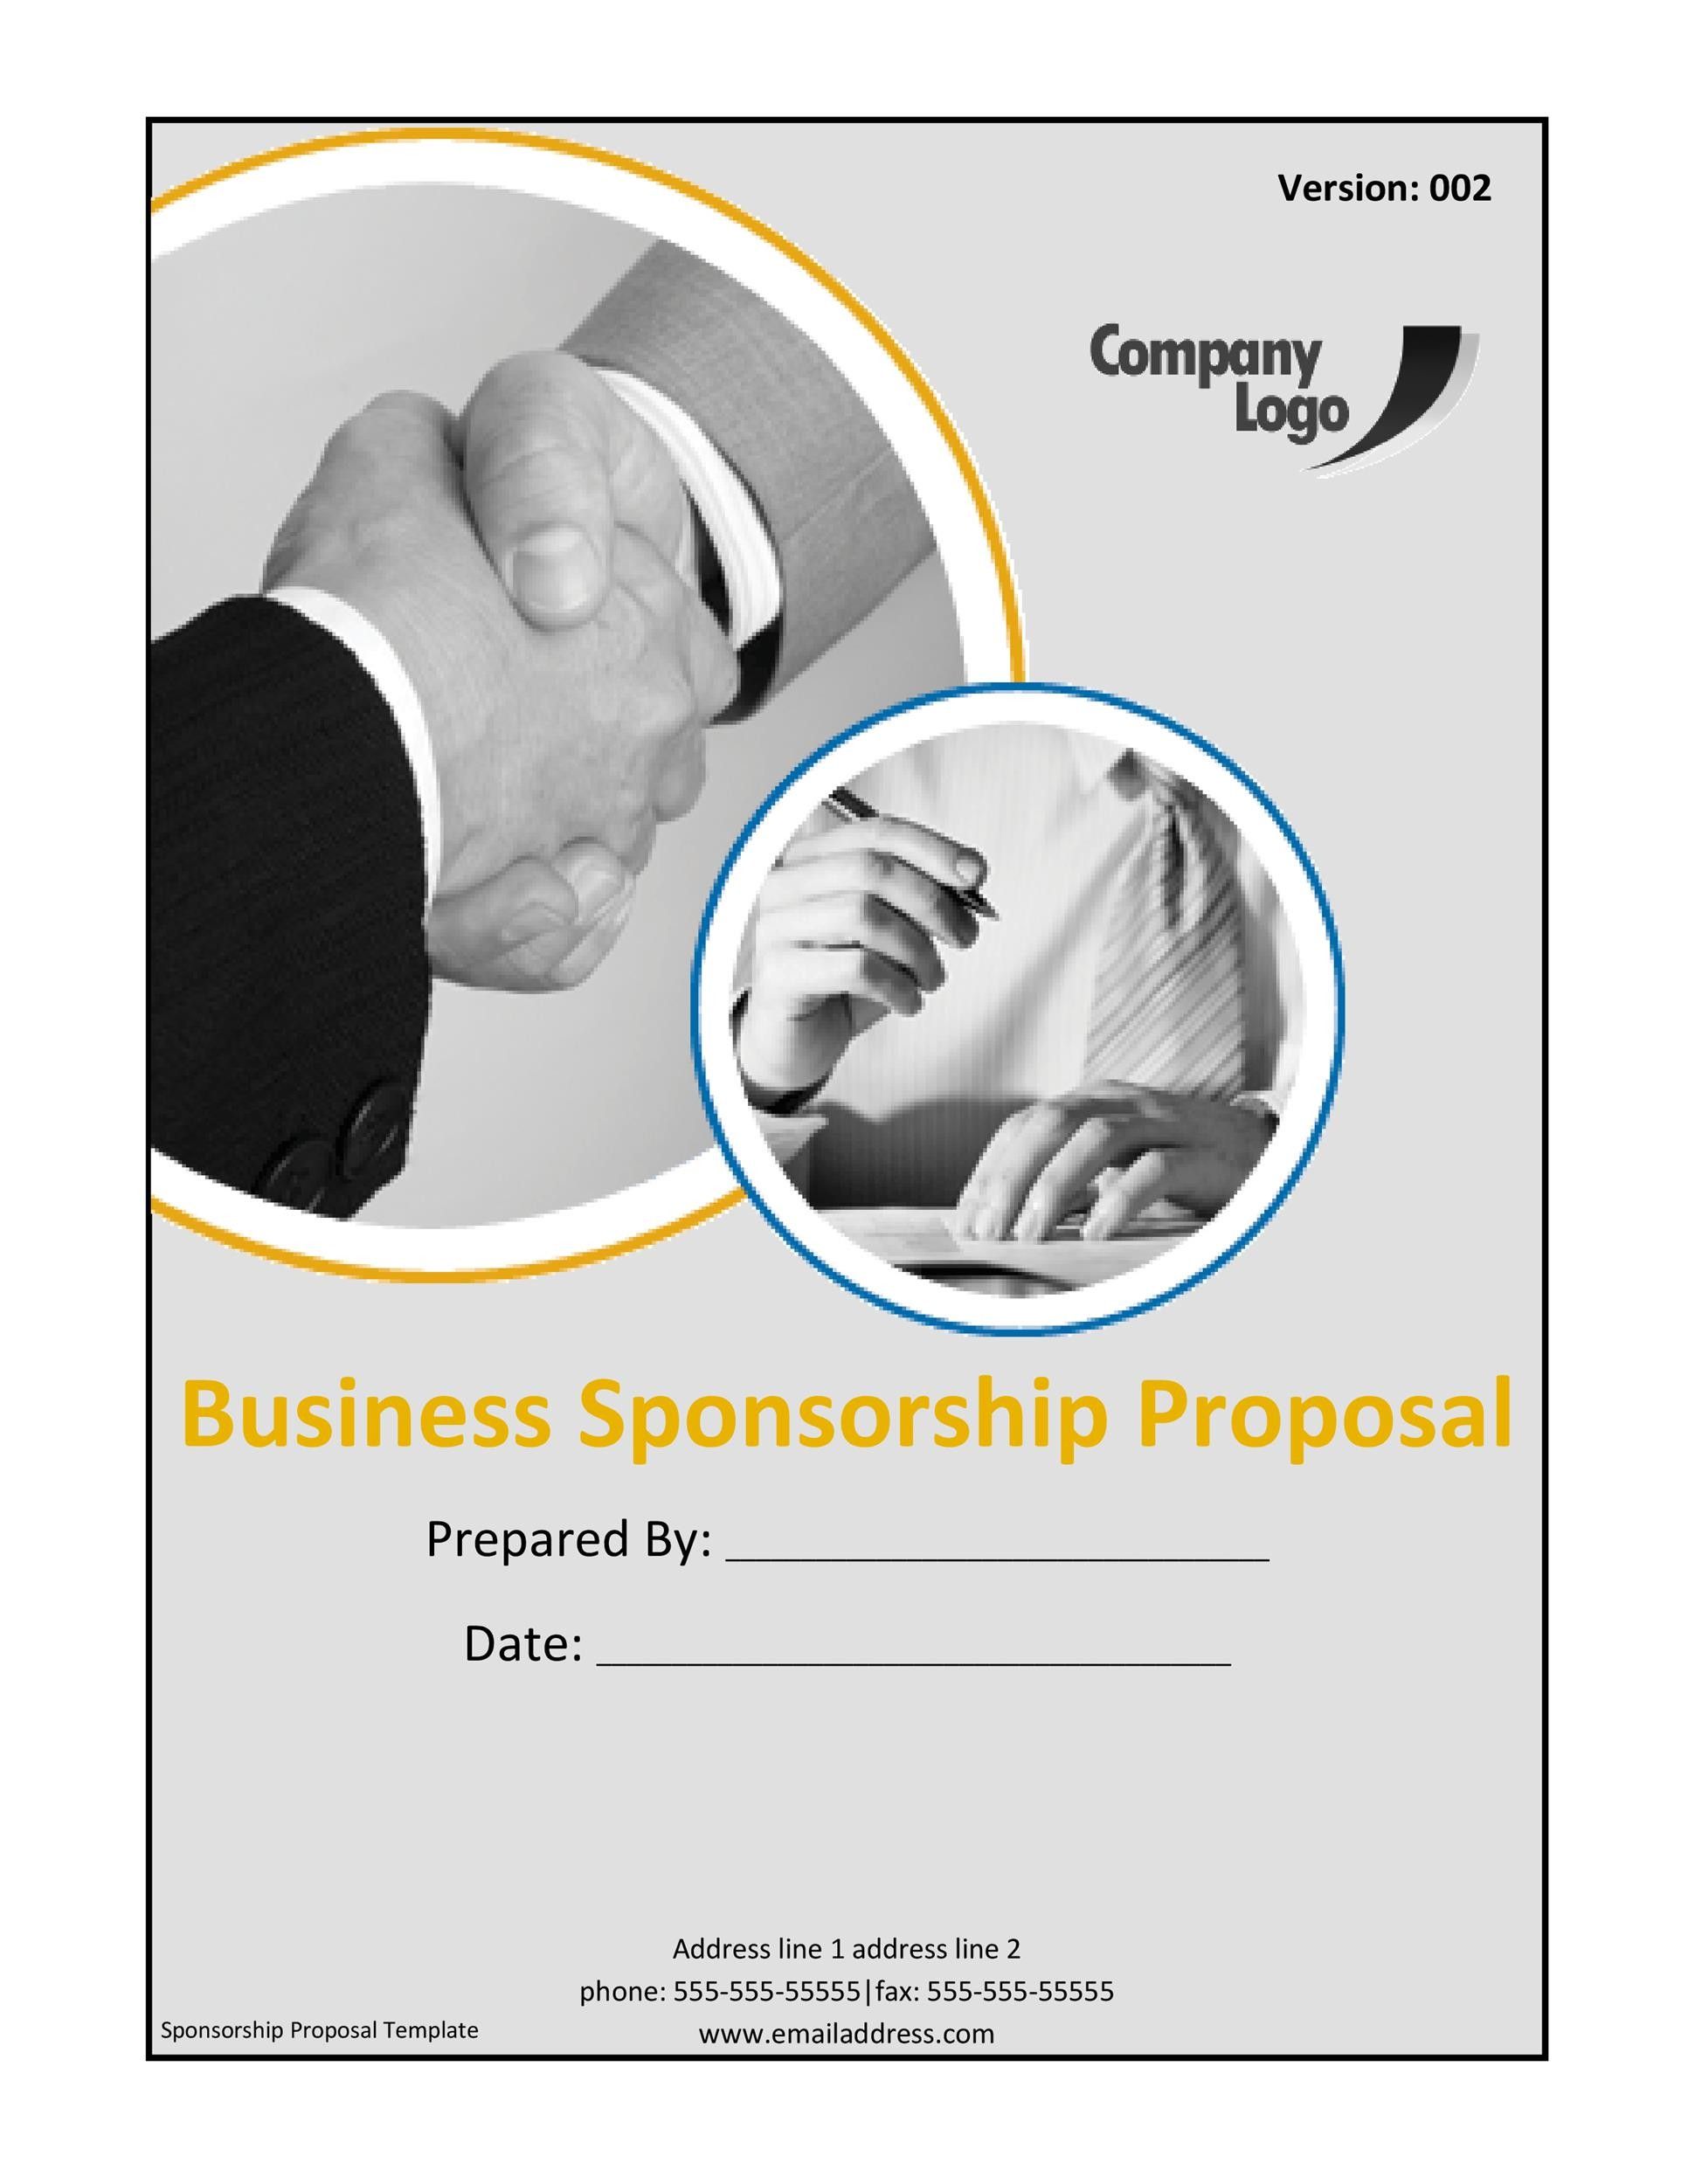 Sponsorship Letter & Proposal Templates